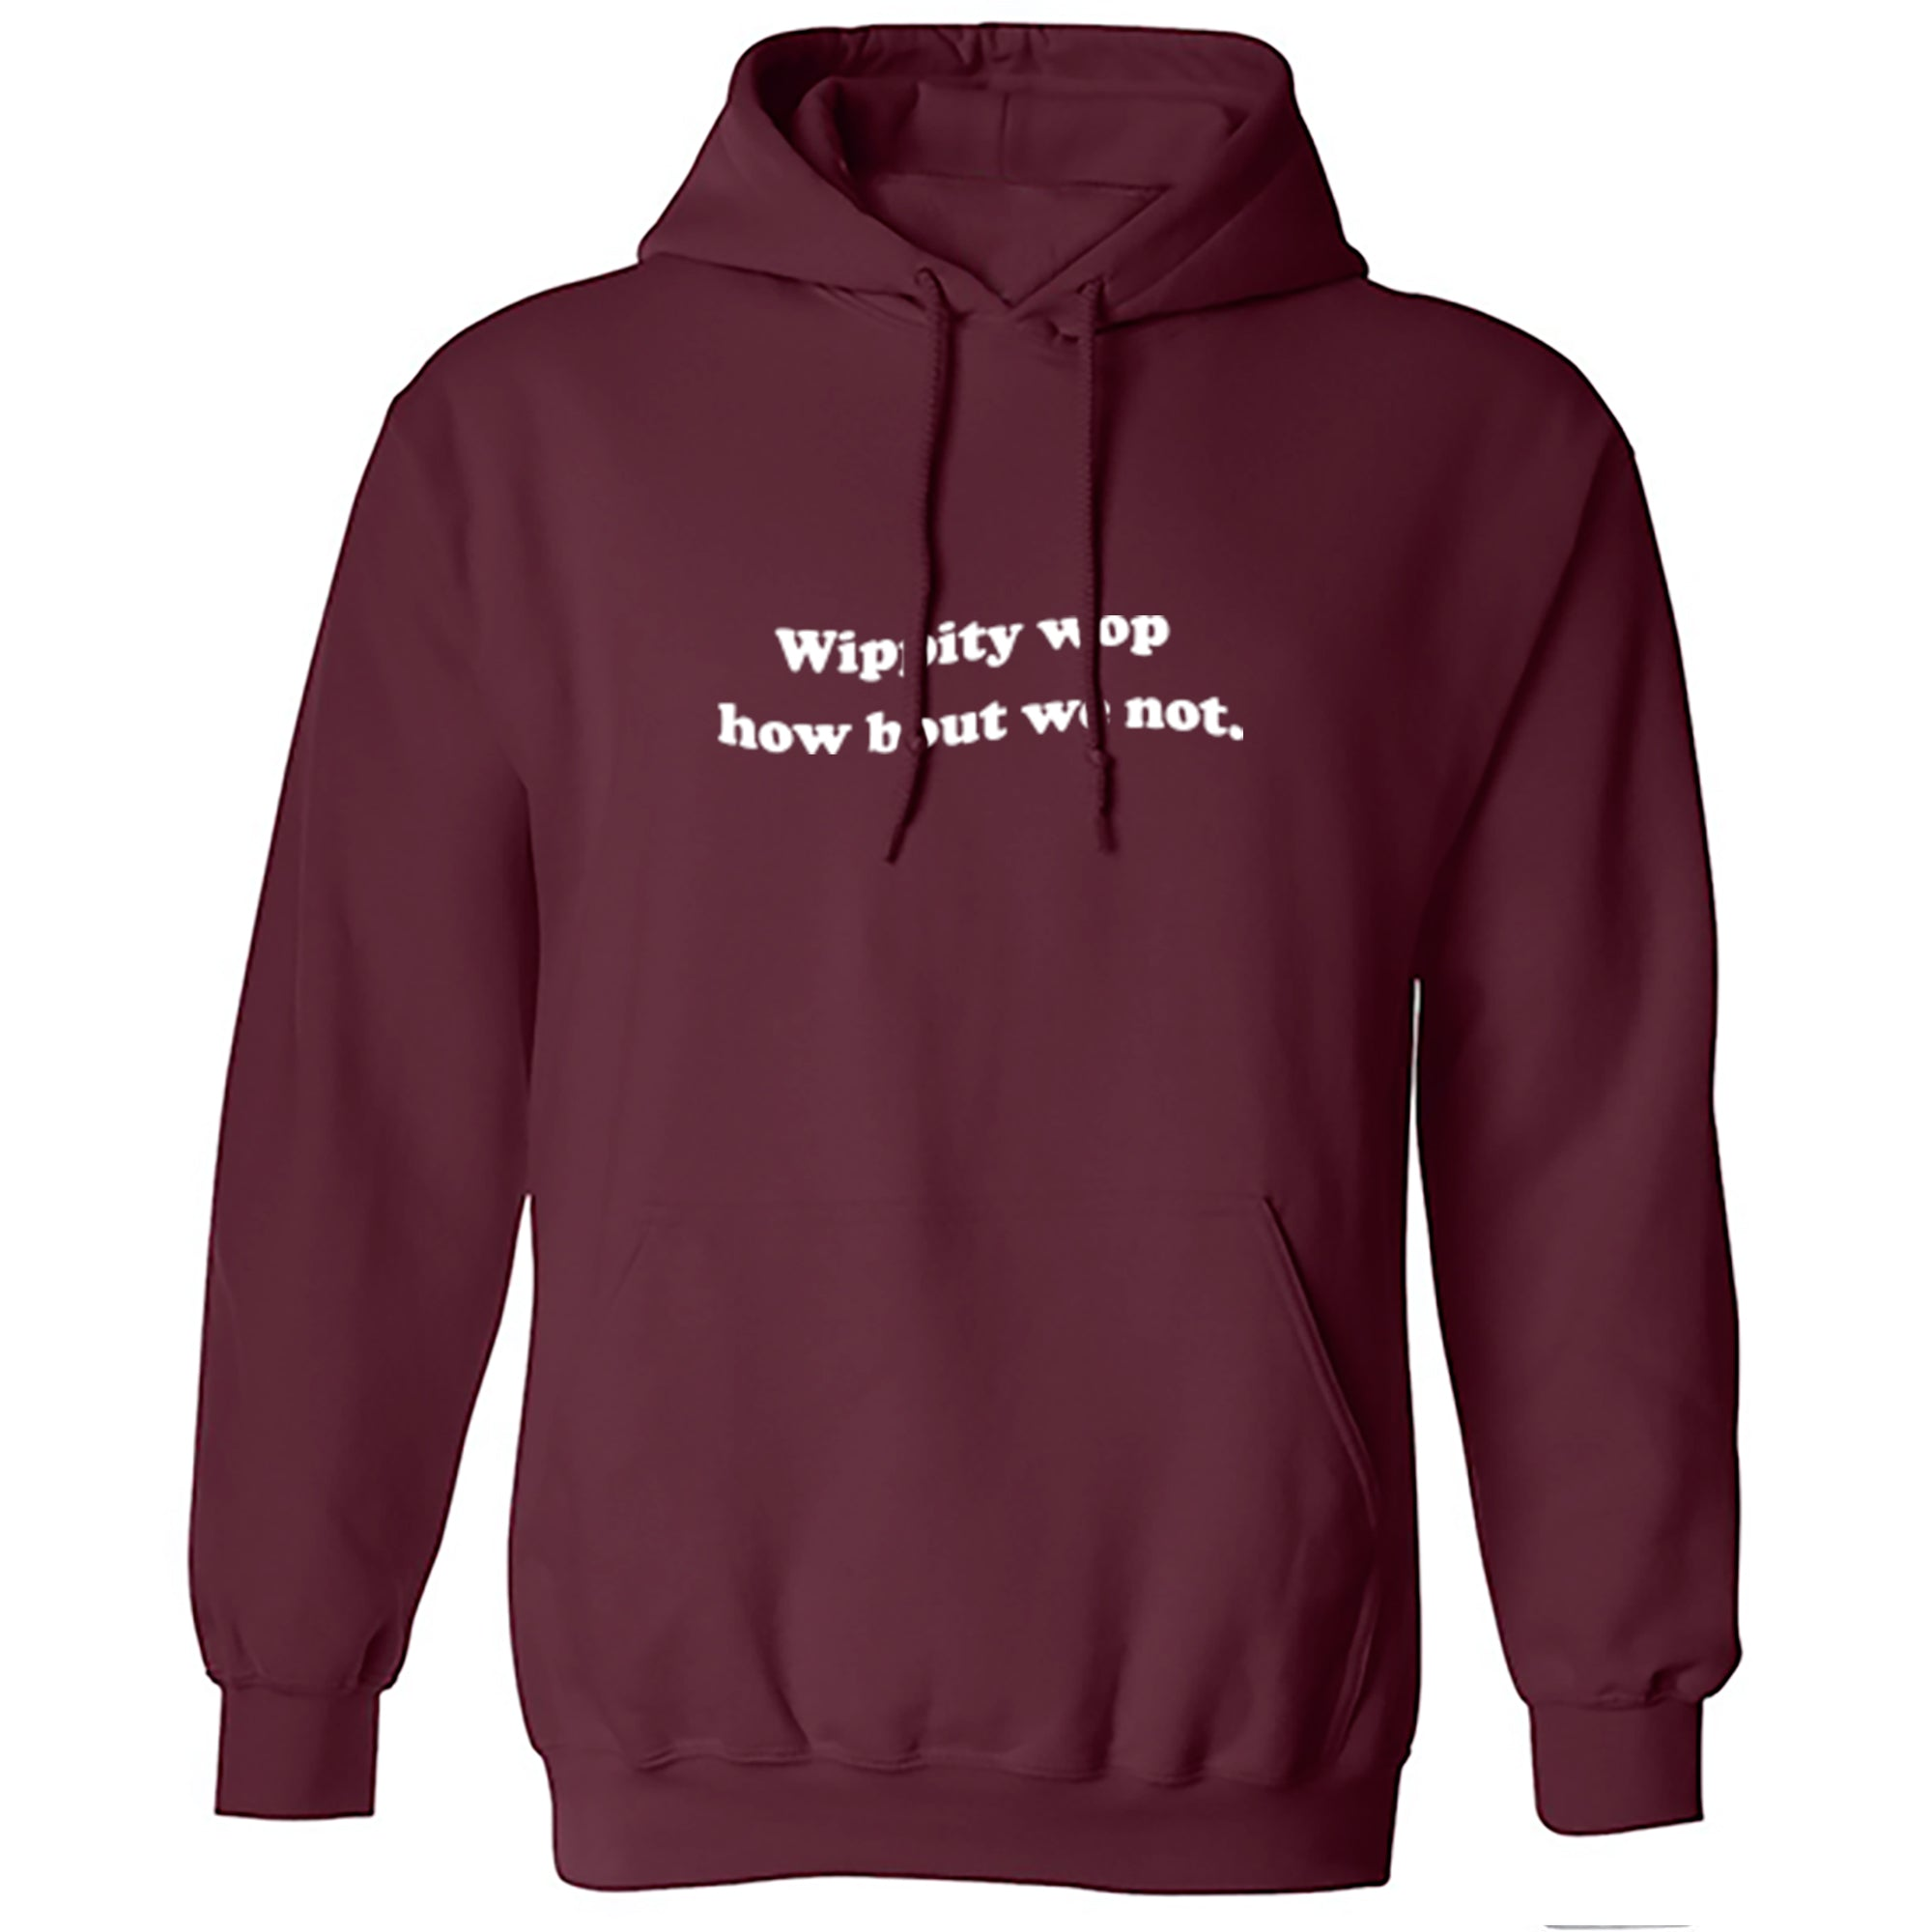 Wippity Wop How Bout We Not Unisex Hoodie S1056 - Illustrated Identity Ltd.